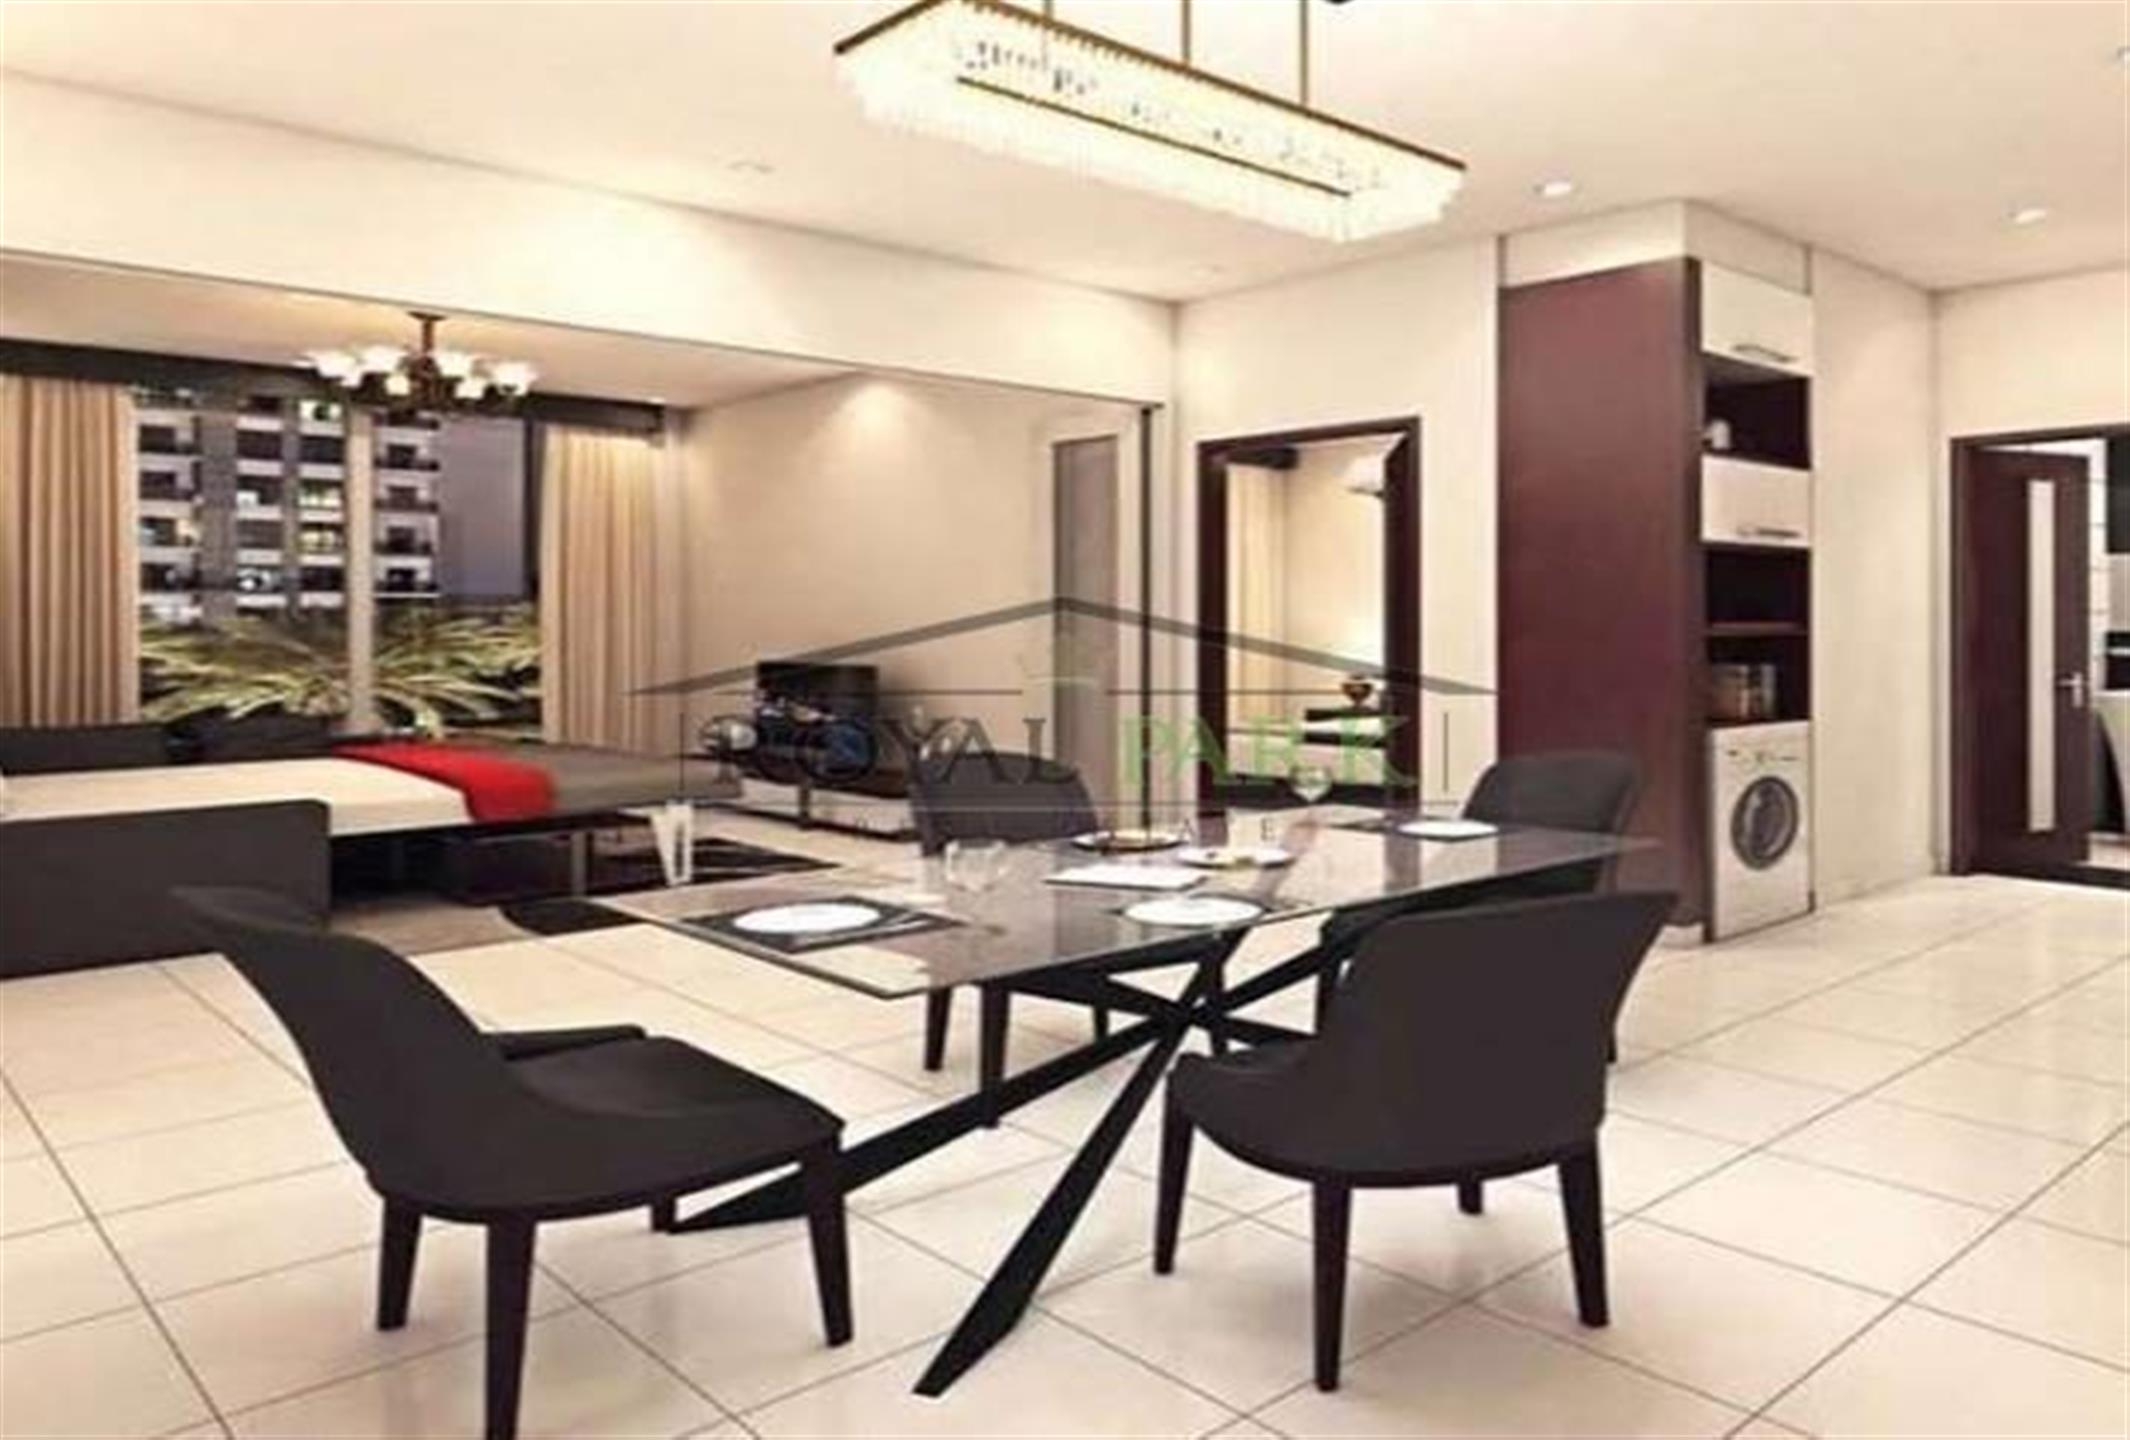 Best Payment Plan, 2 Bedroom Apt In Intl City